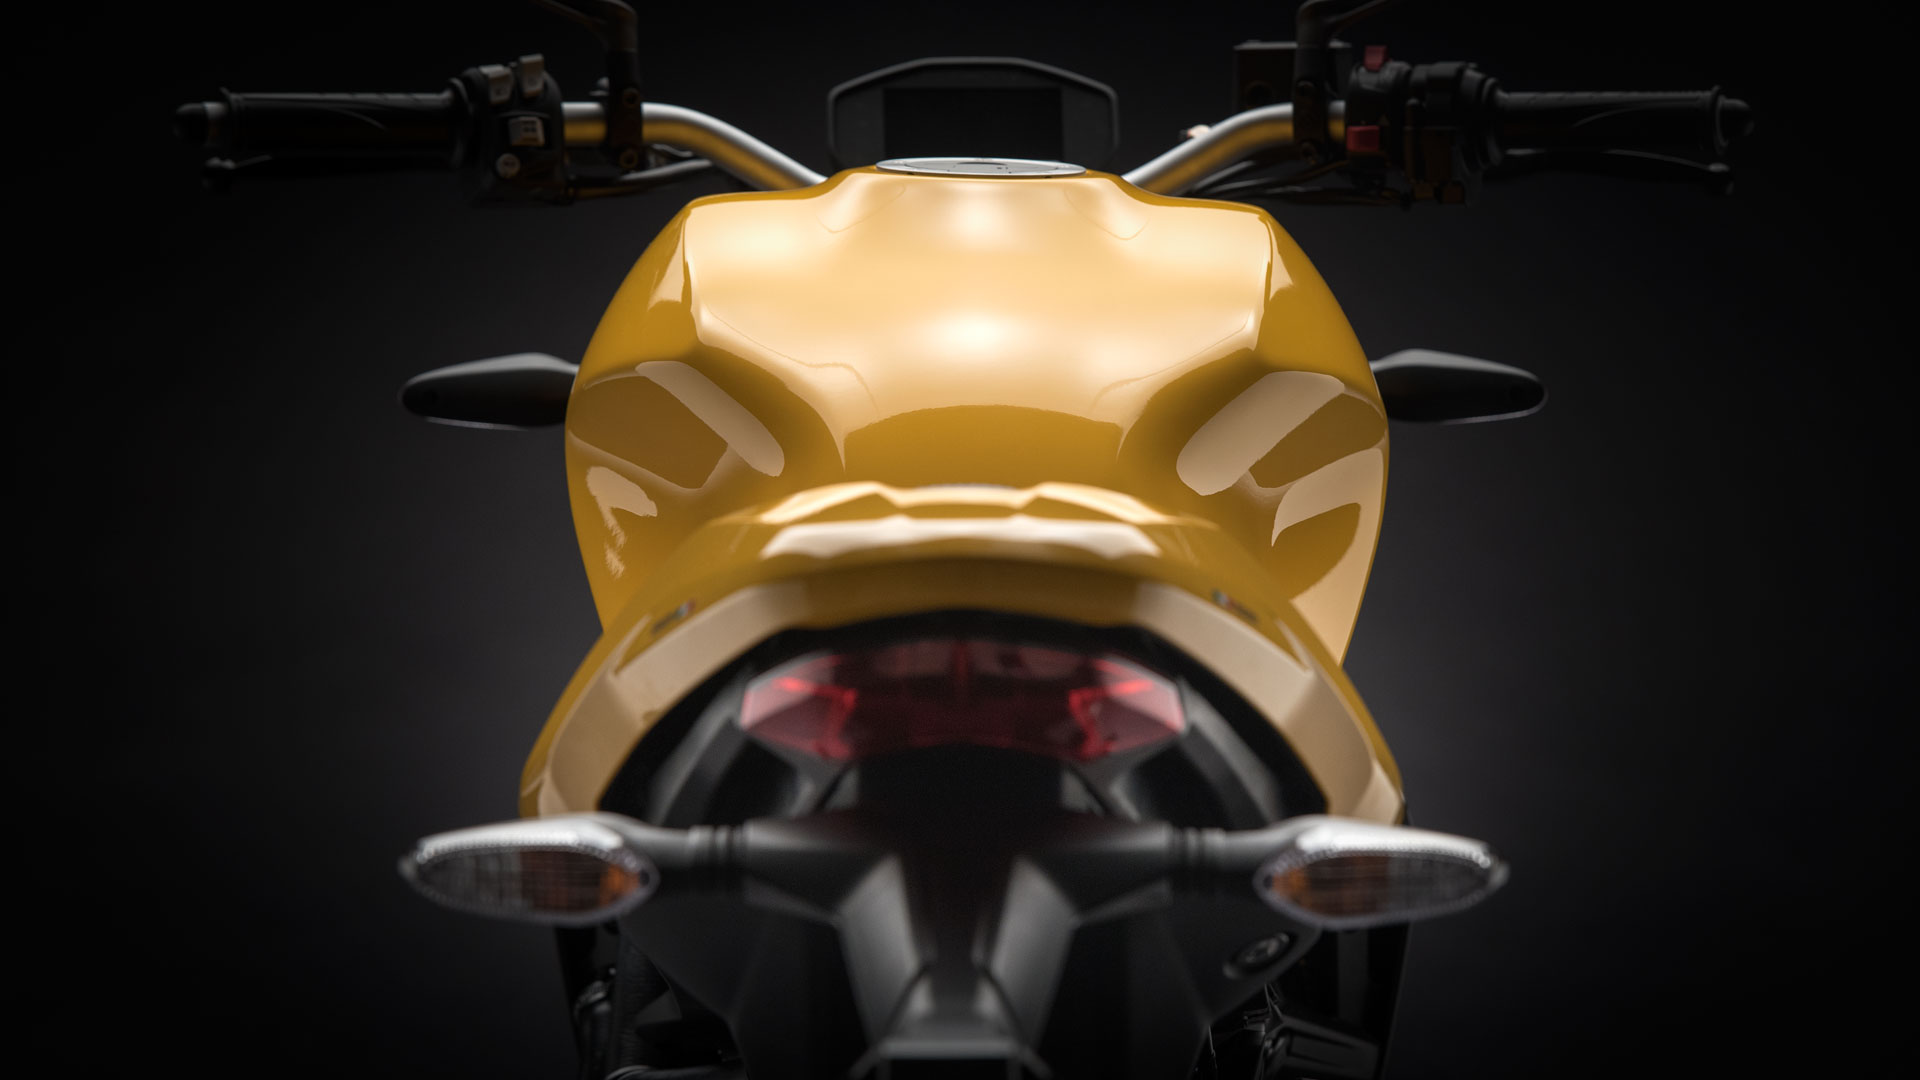 Monster-821-MY18-Yellow-20-Slider-Gallery-1920x1080 Ducati Monster 821 Stealth - perfect pentru toata lumea !